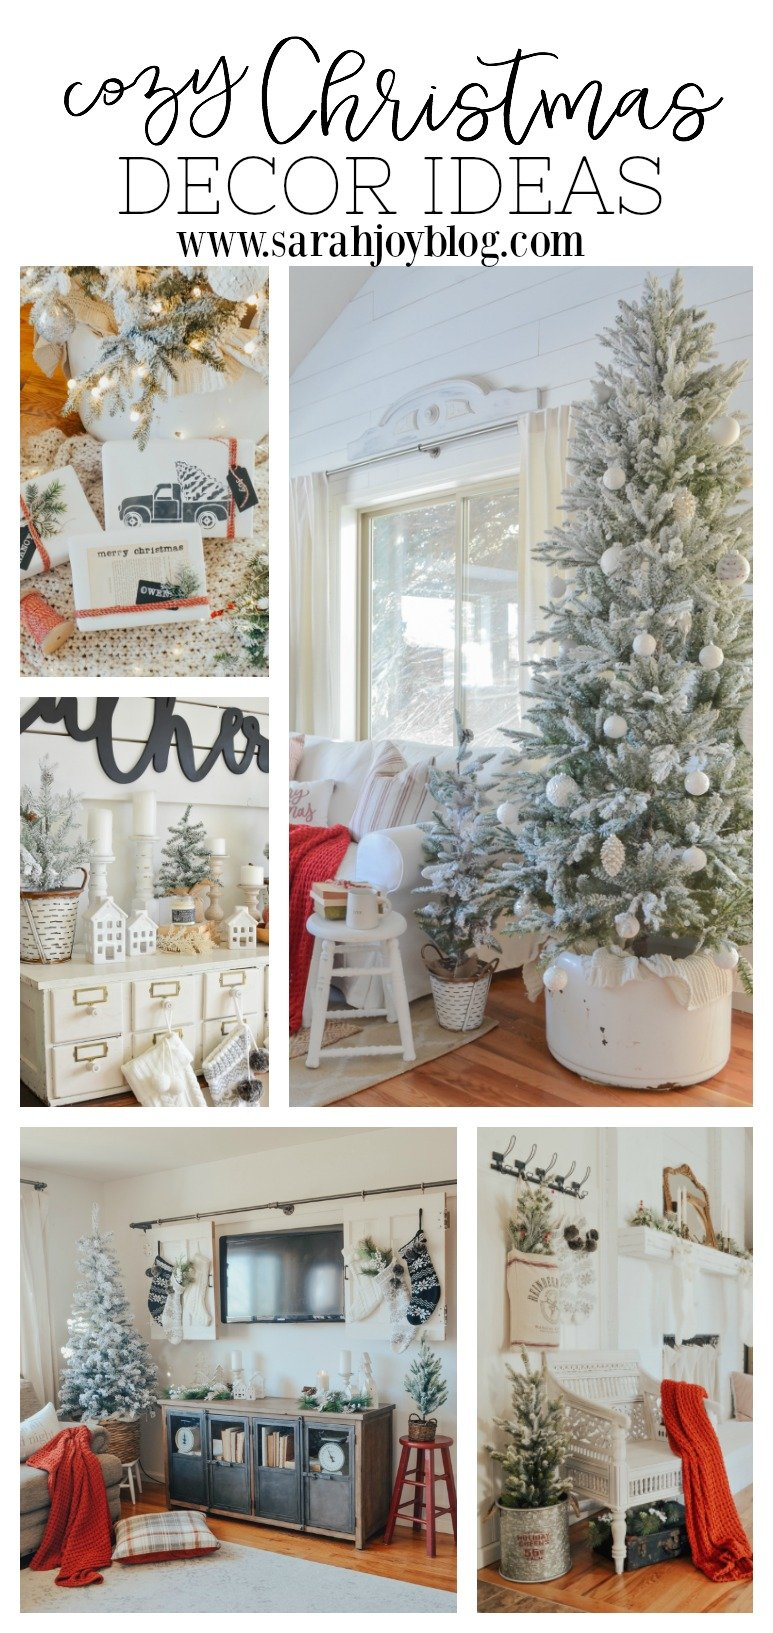 Cozy Christmas Decor Ideas for every room in your home.